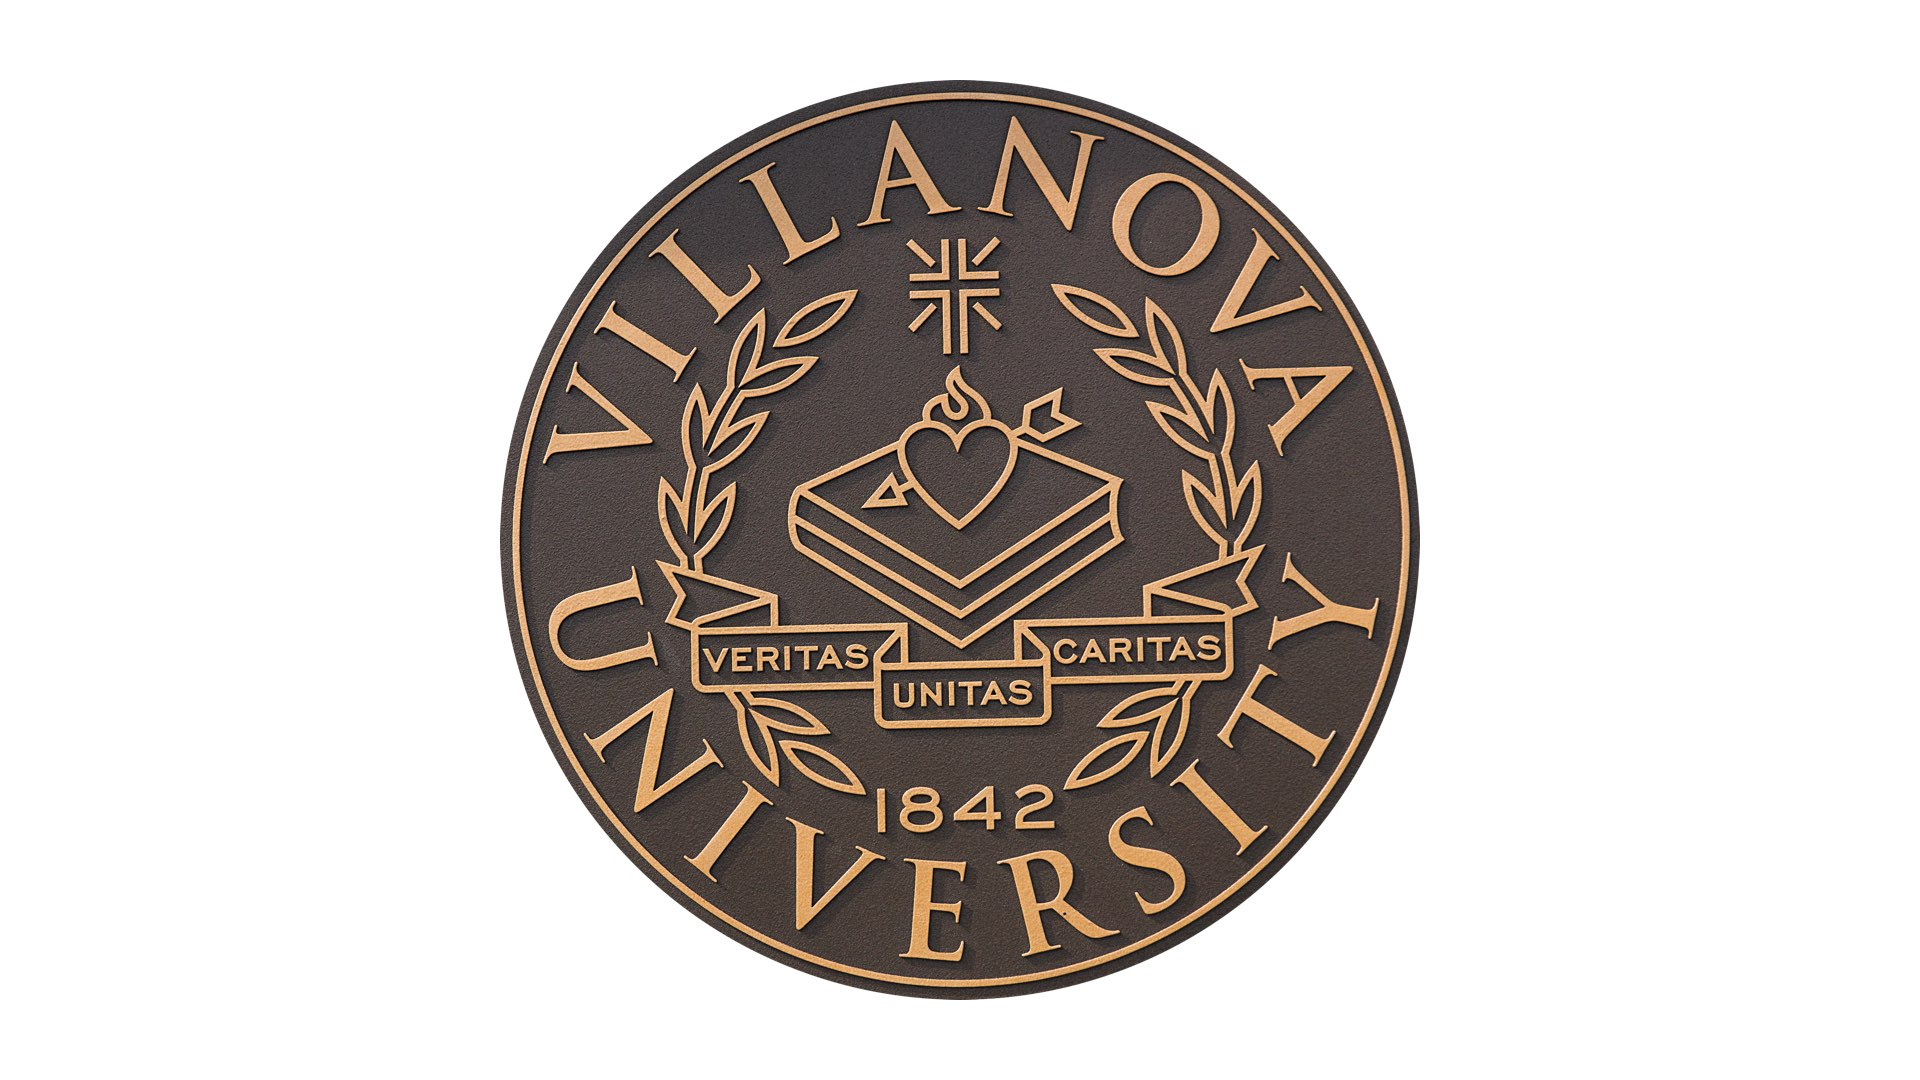 Official Villanova seal which bears the words veritas, unitas, caritas